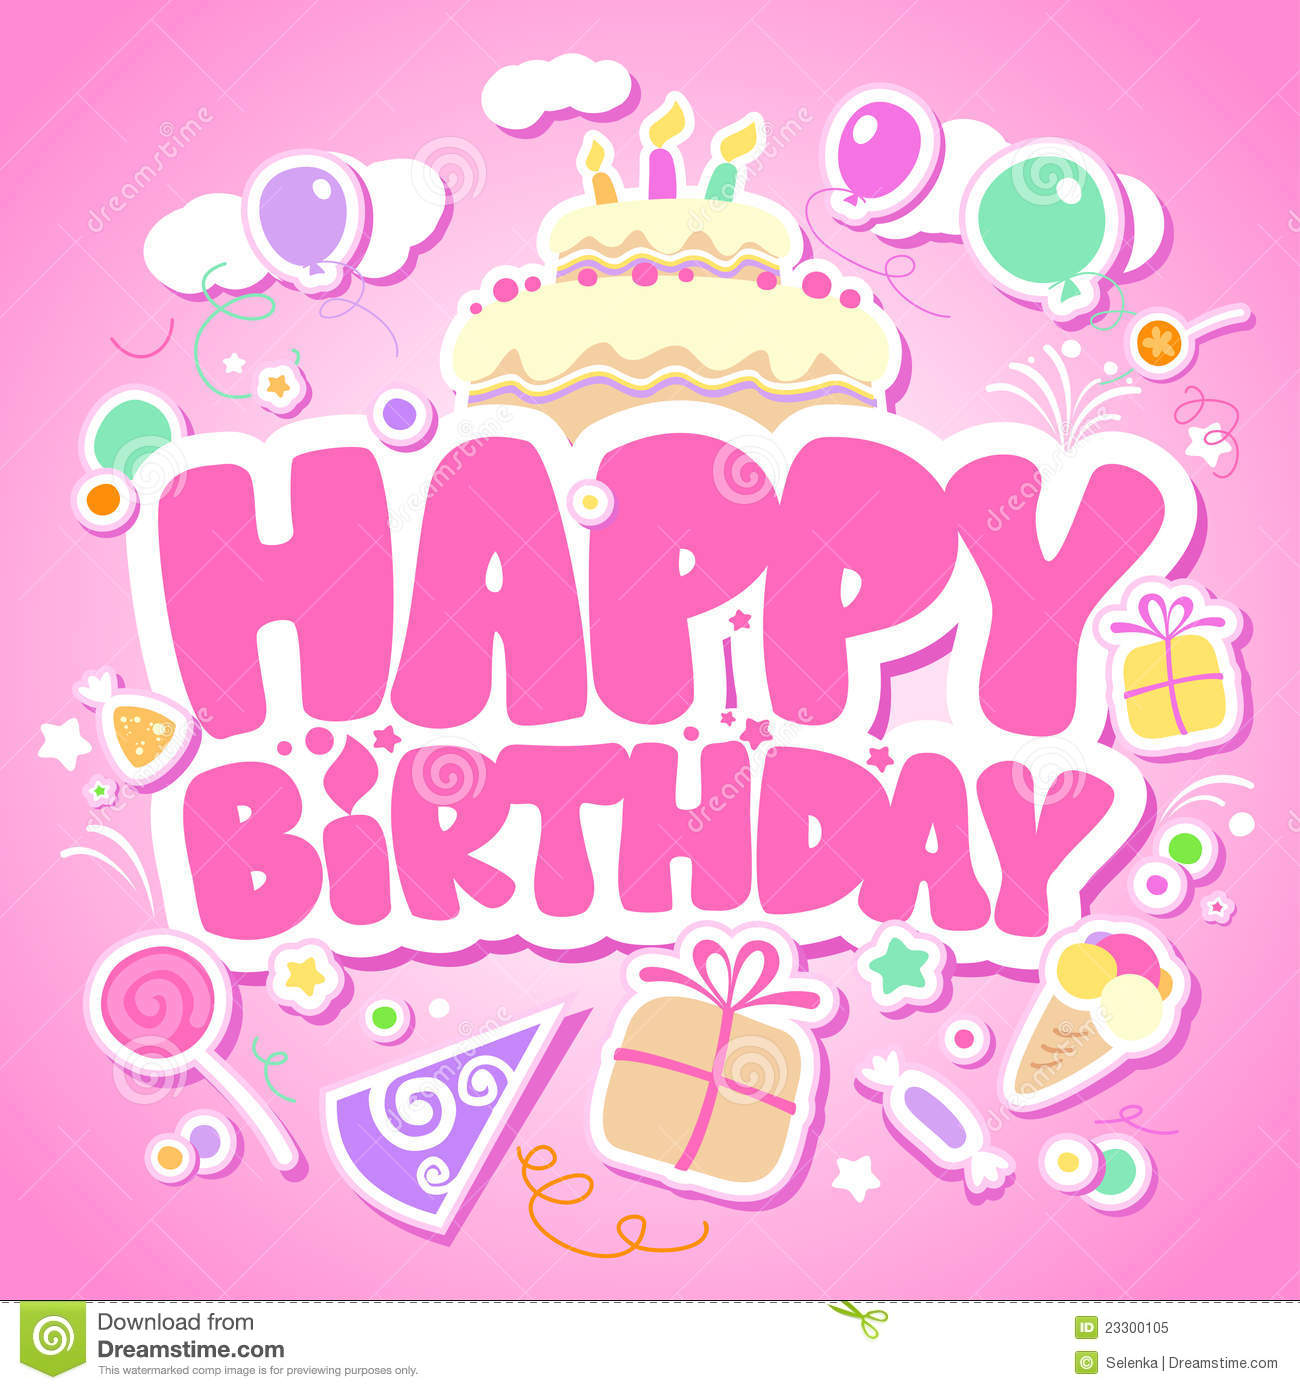 Http Image 23300017 Black Bear Mother Cub 1000 Images About Circuit Cricket On Pinterest Silhouette Vector Happy Birthday Pink Card 23300105